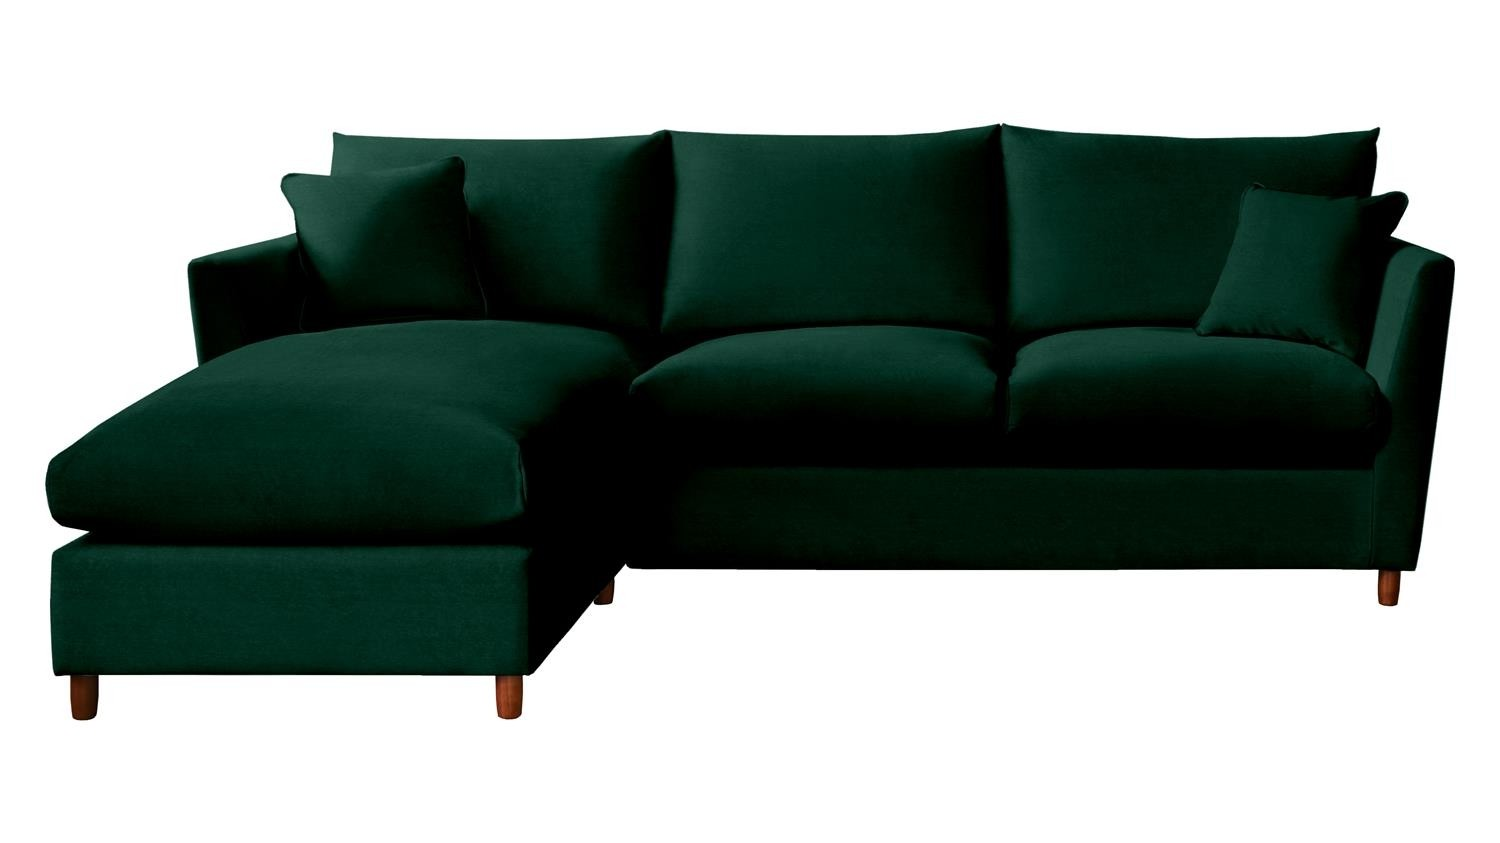 The Ansty 4 Seater Left Chaise Sofa